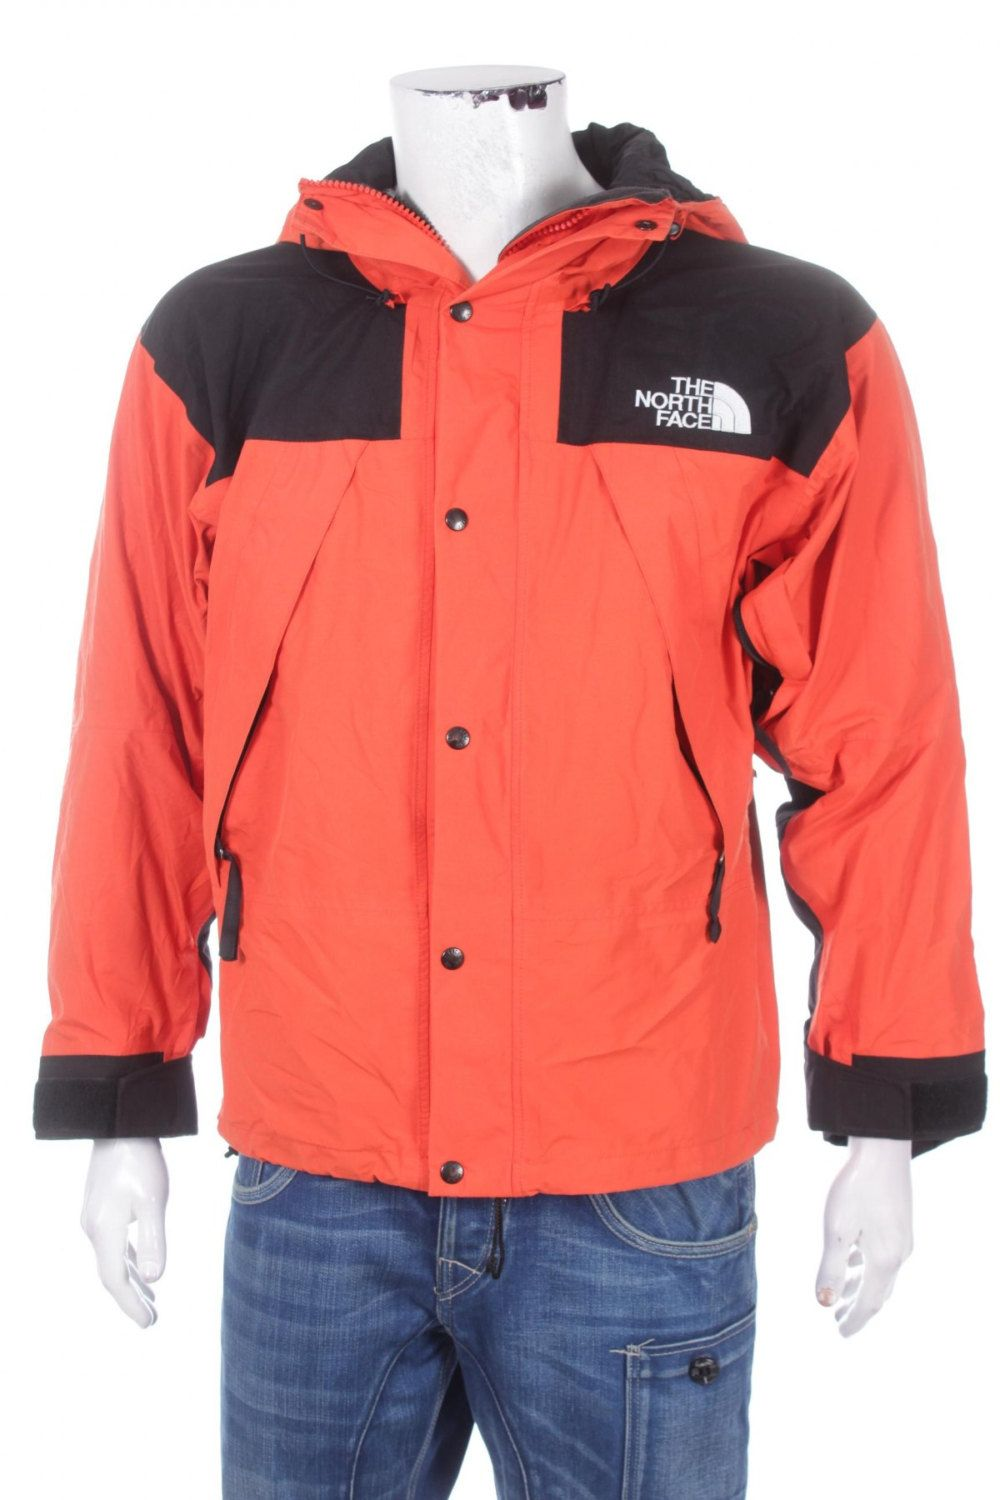 5a9831925 Vintage 90s The North Face Mountain Guide Gore-Tex jacket Orange ...